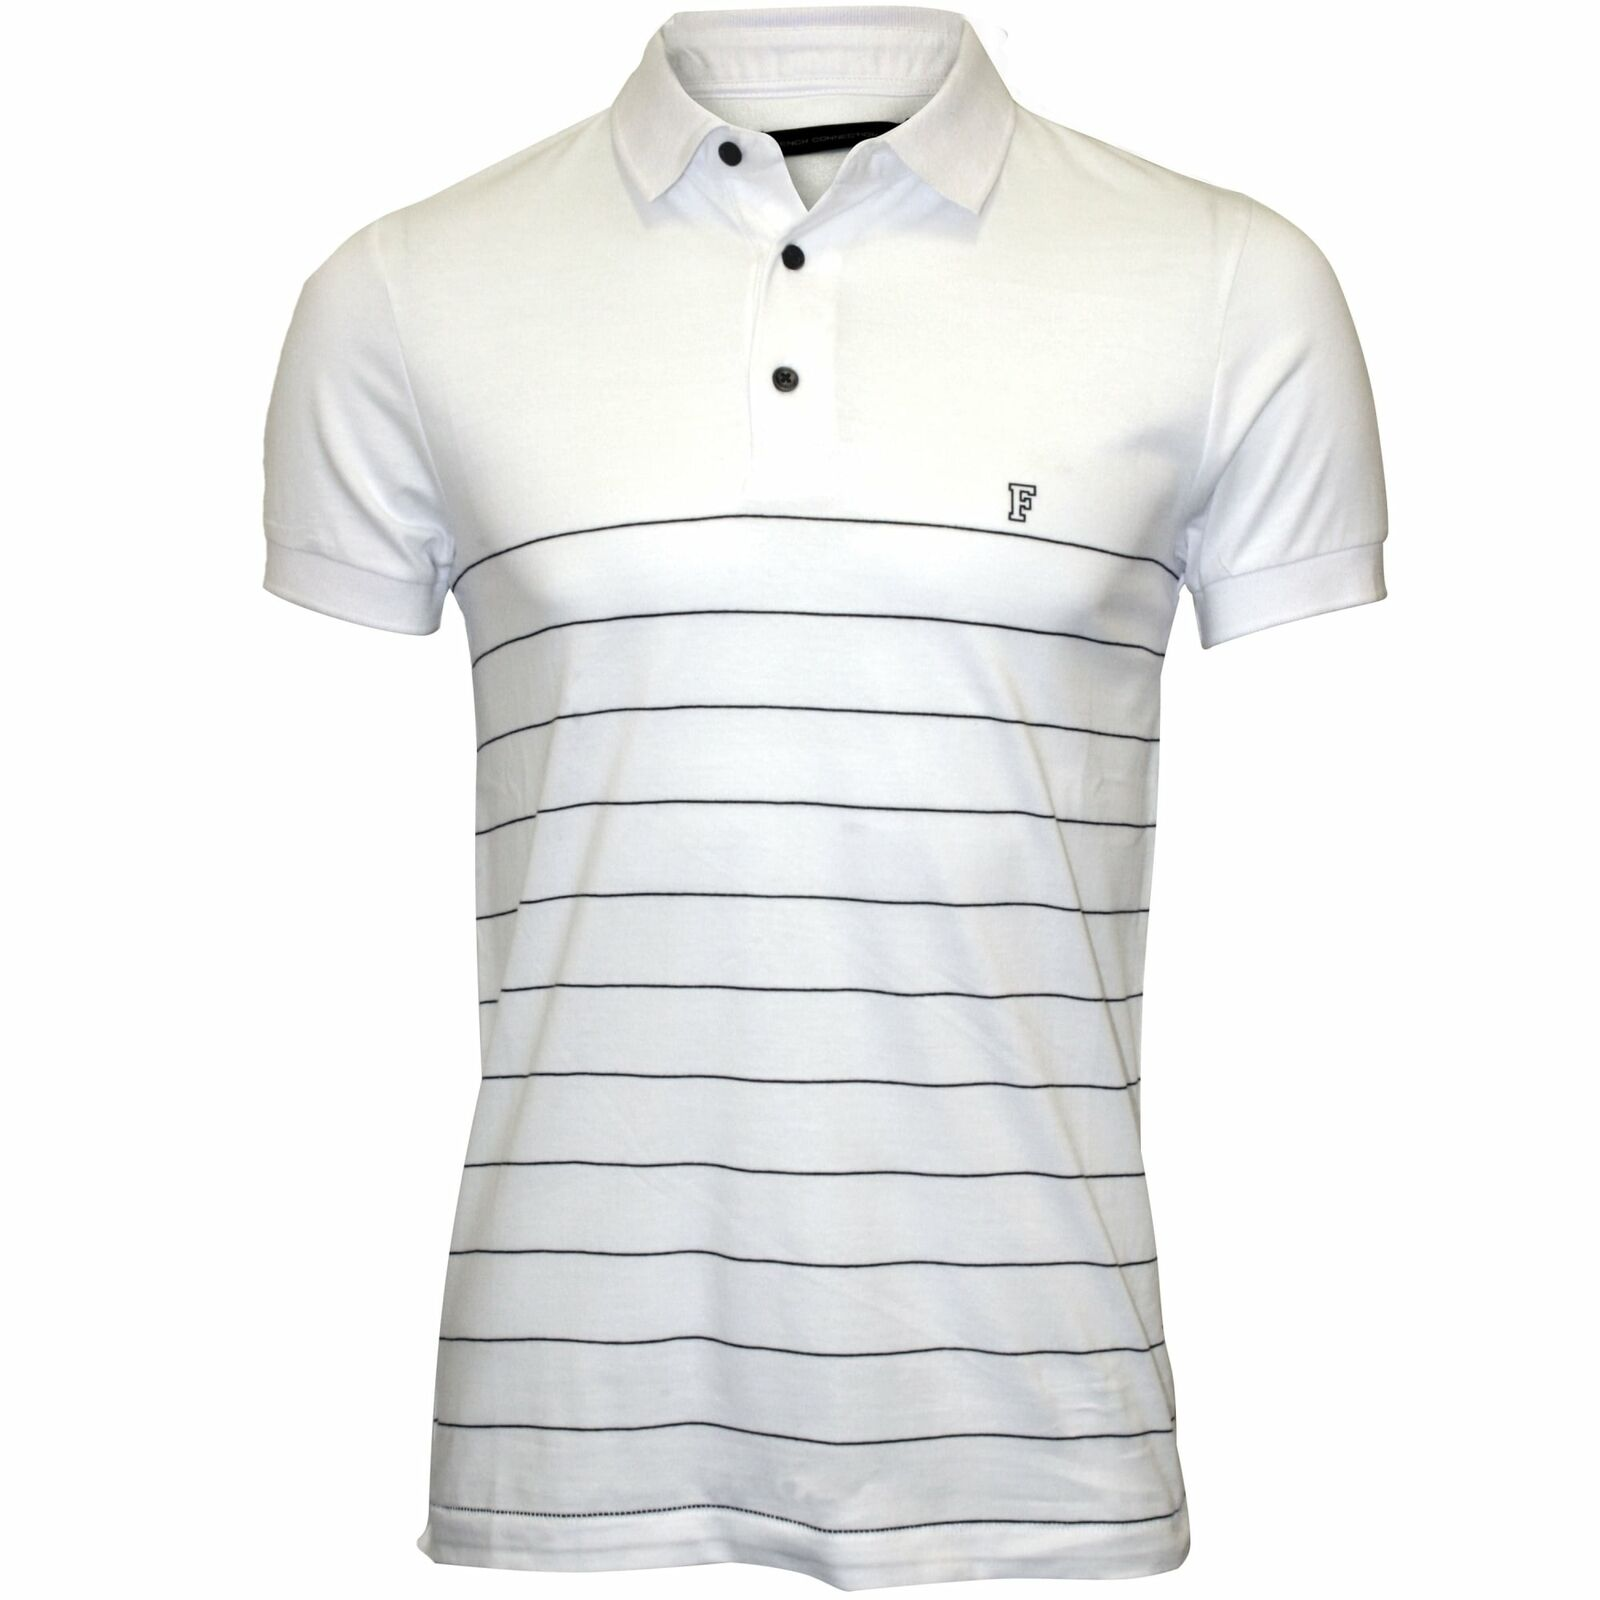 French Connection Striped Pique Men's Polo Shirt, White navy